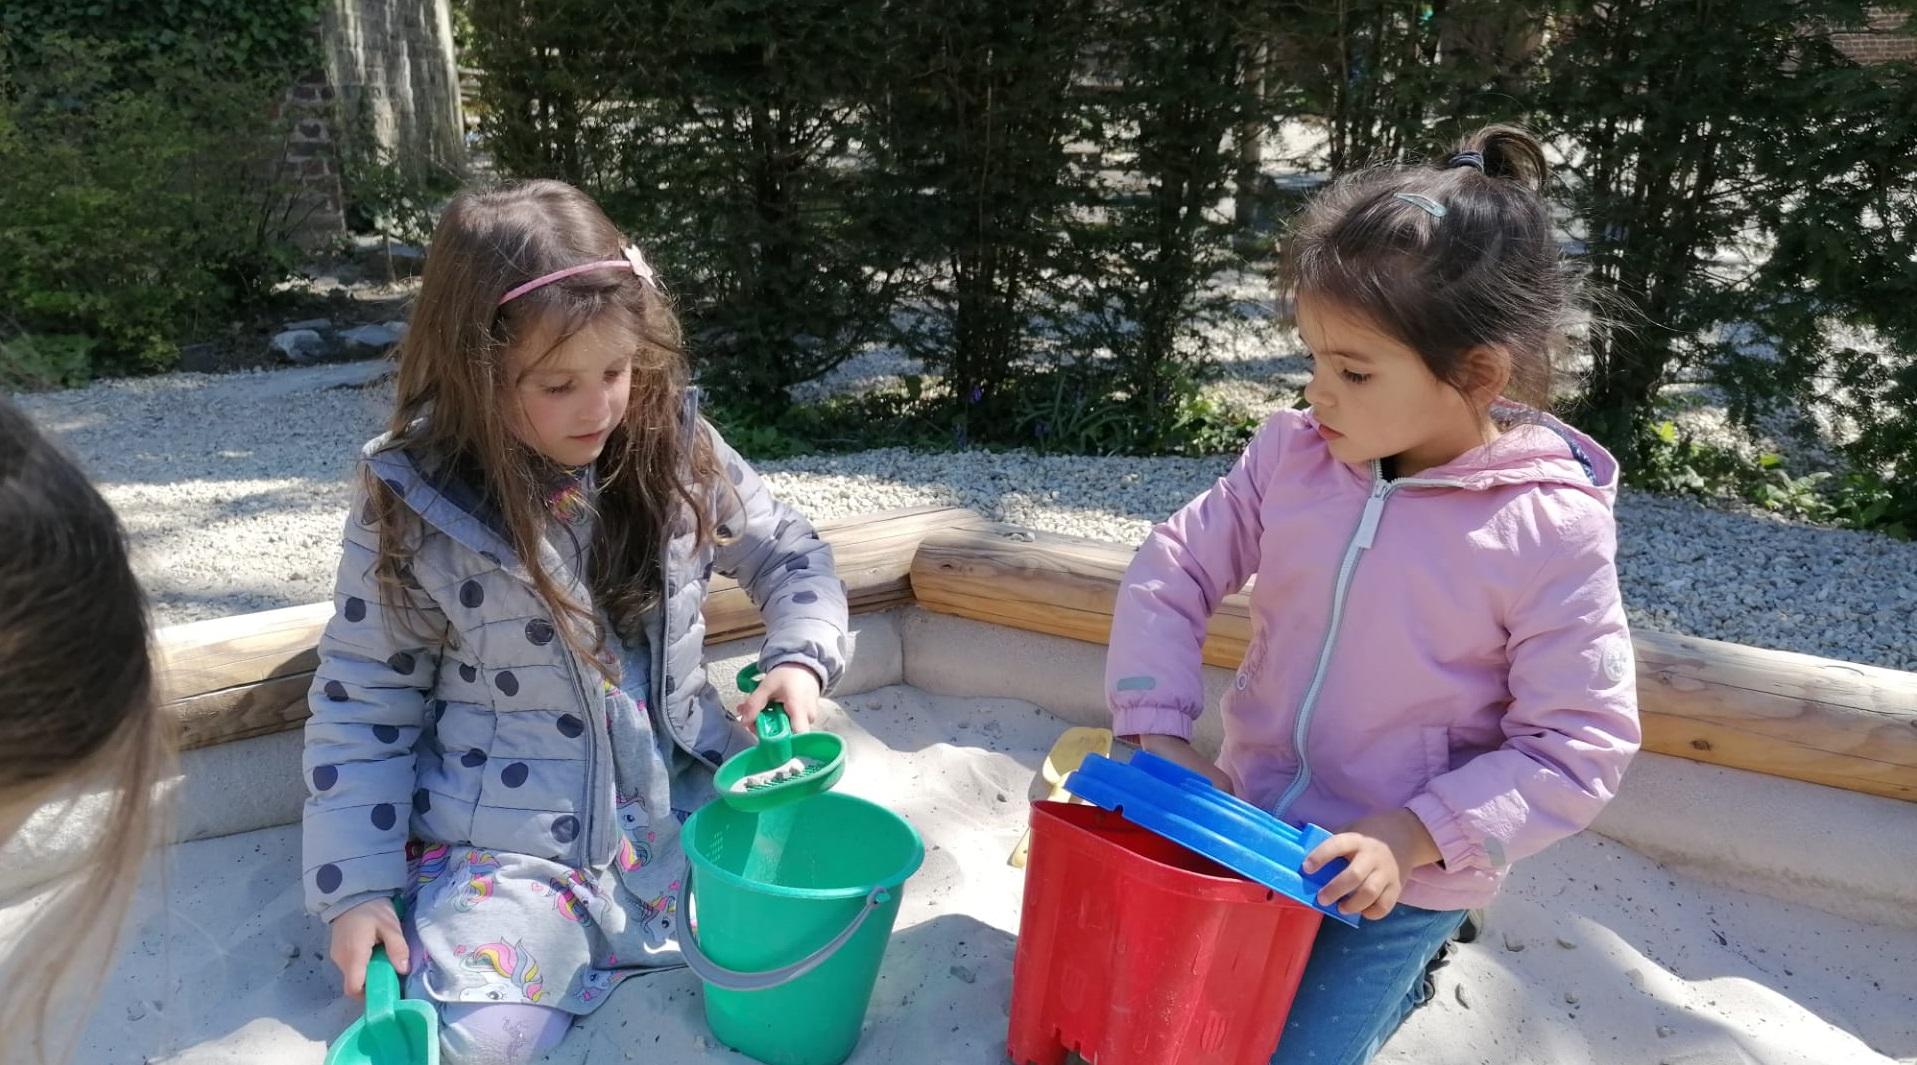 Two children playing in the sandpit.